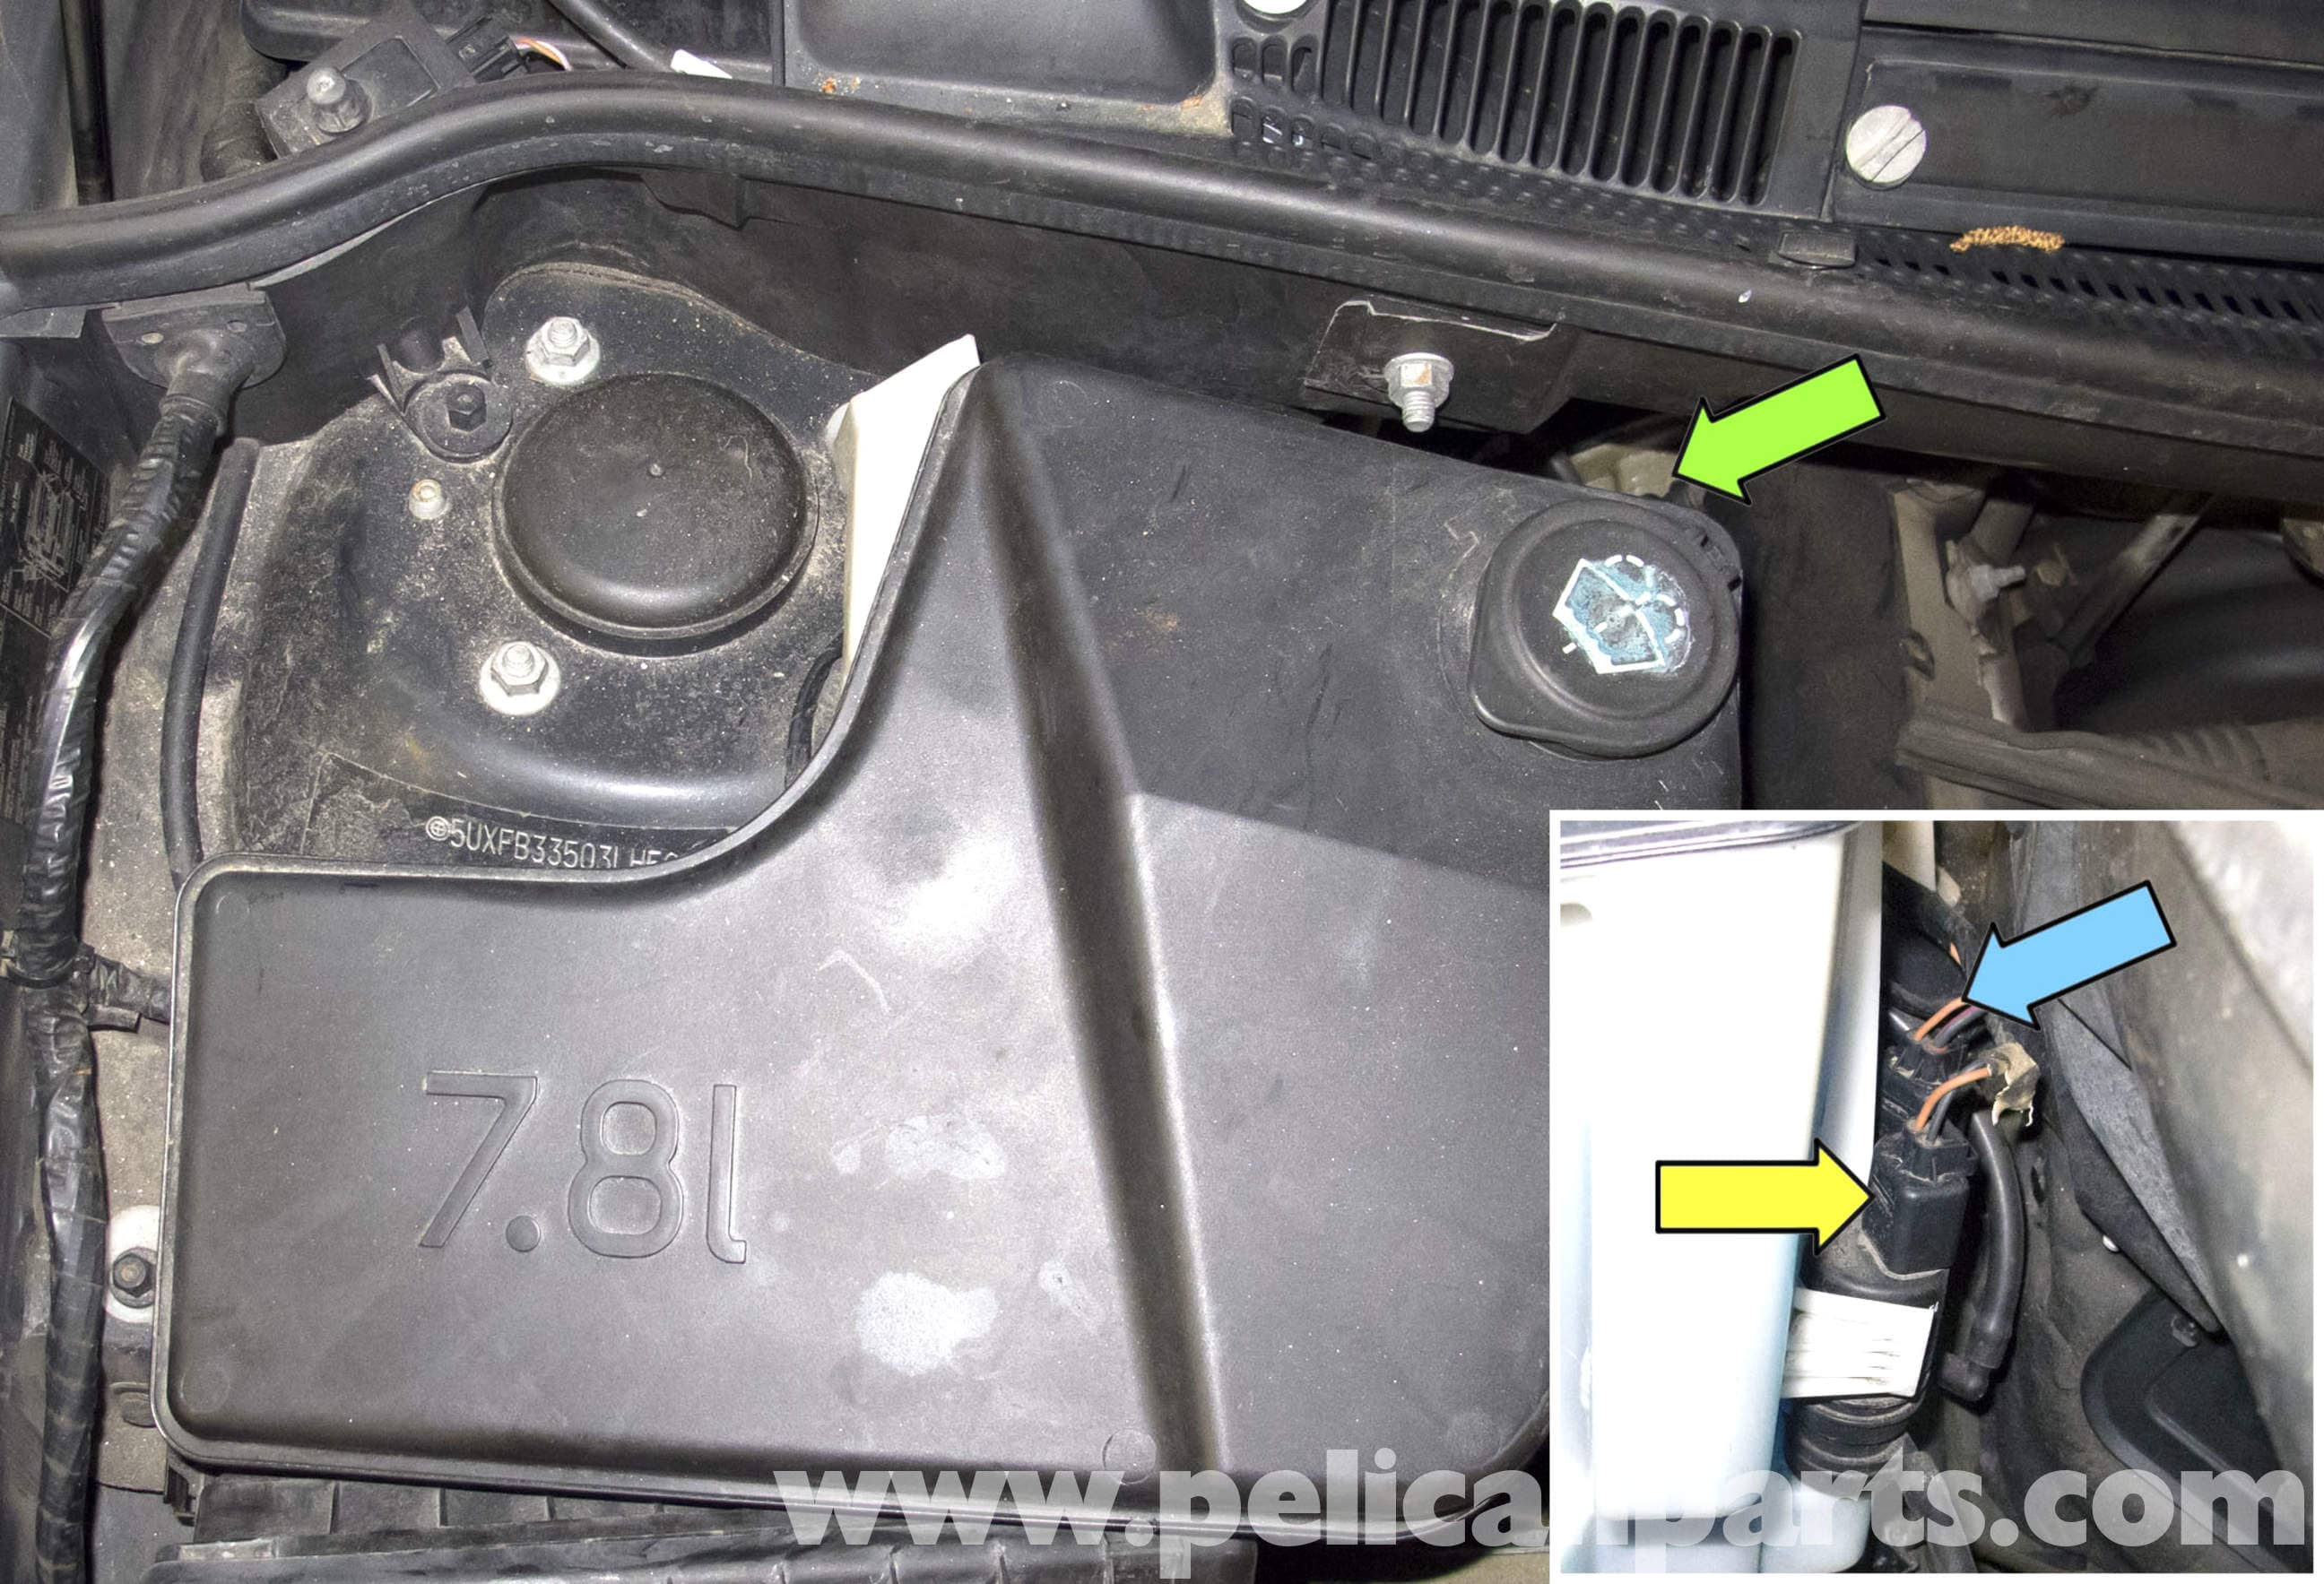 BMW X5 Washer Pump Testing and Replacement  E53 2000  2006    Pelican Parts DIY Maintenance Article